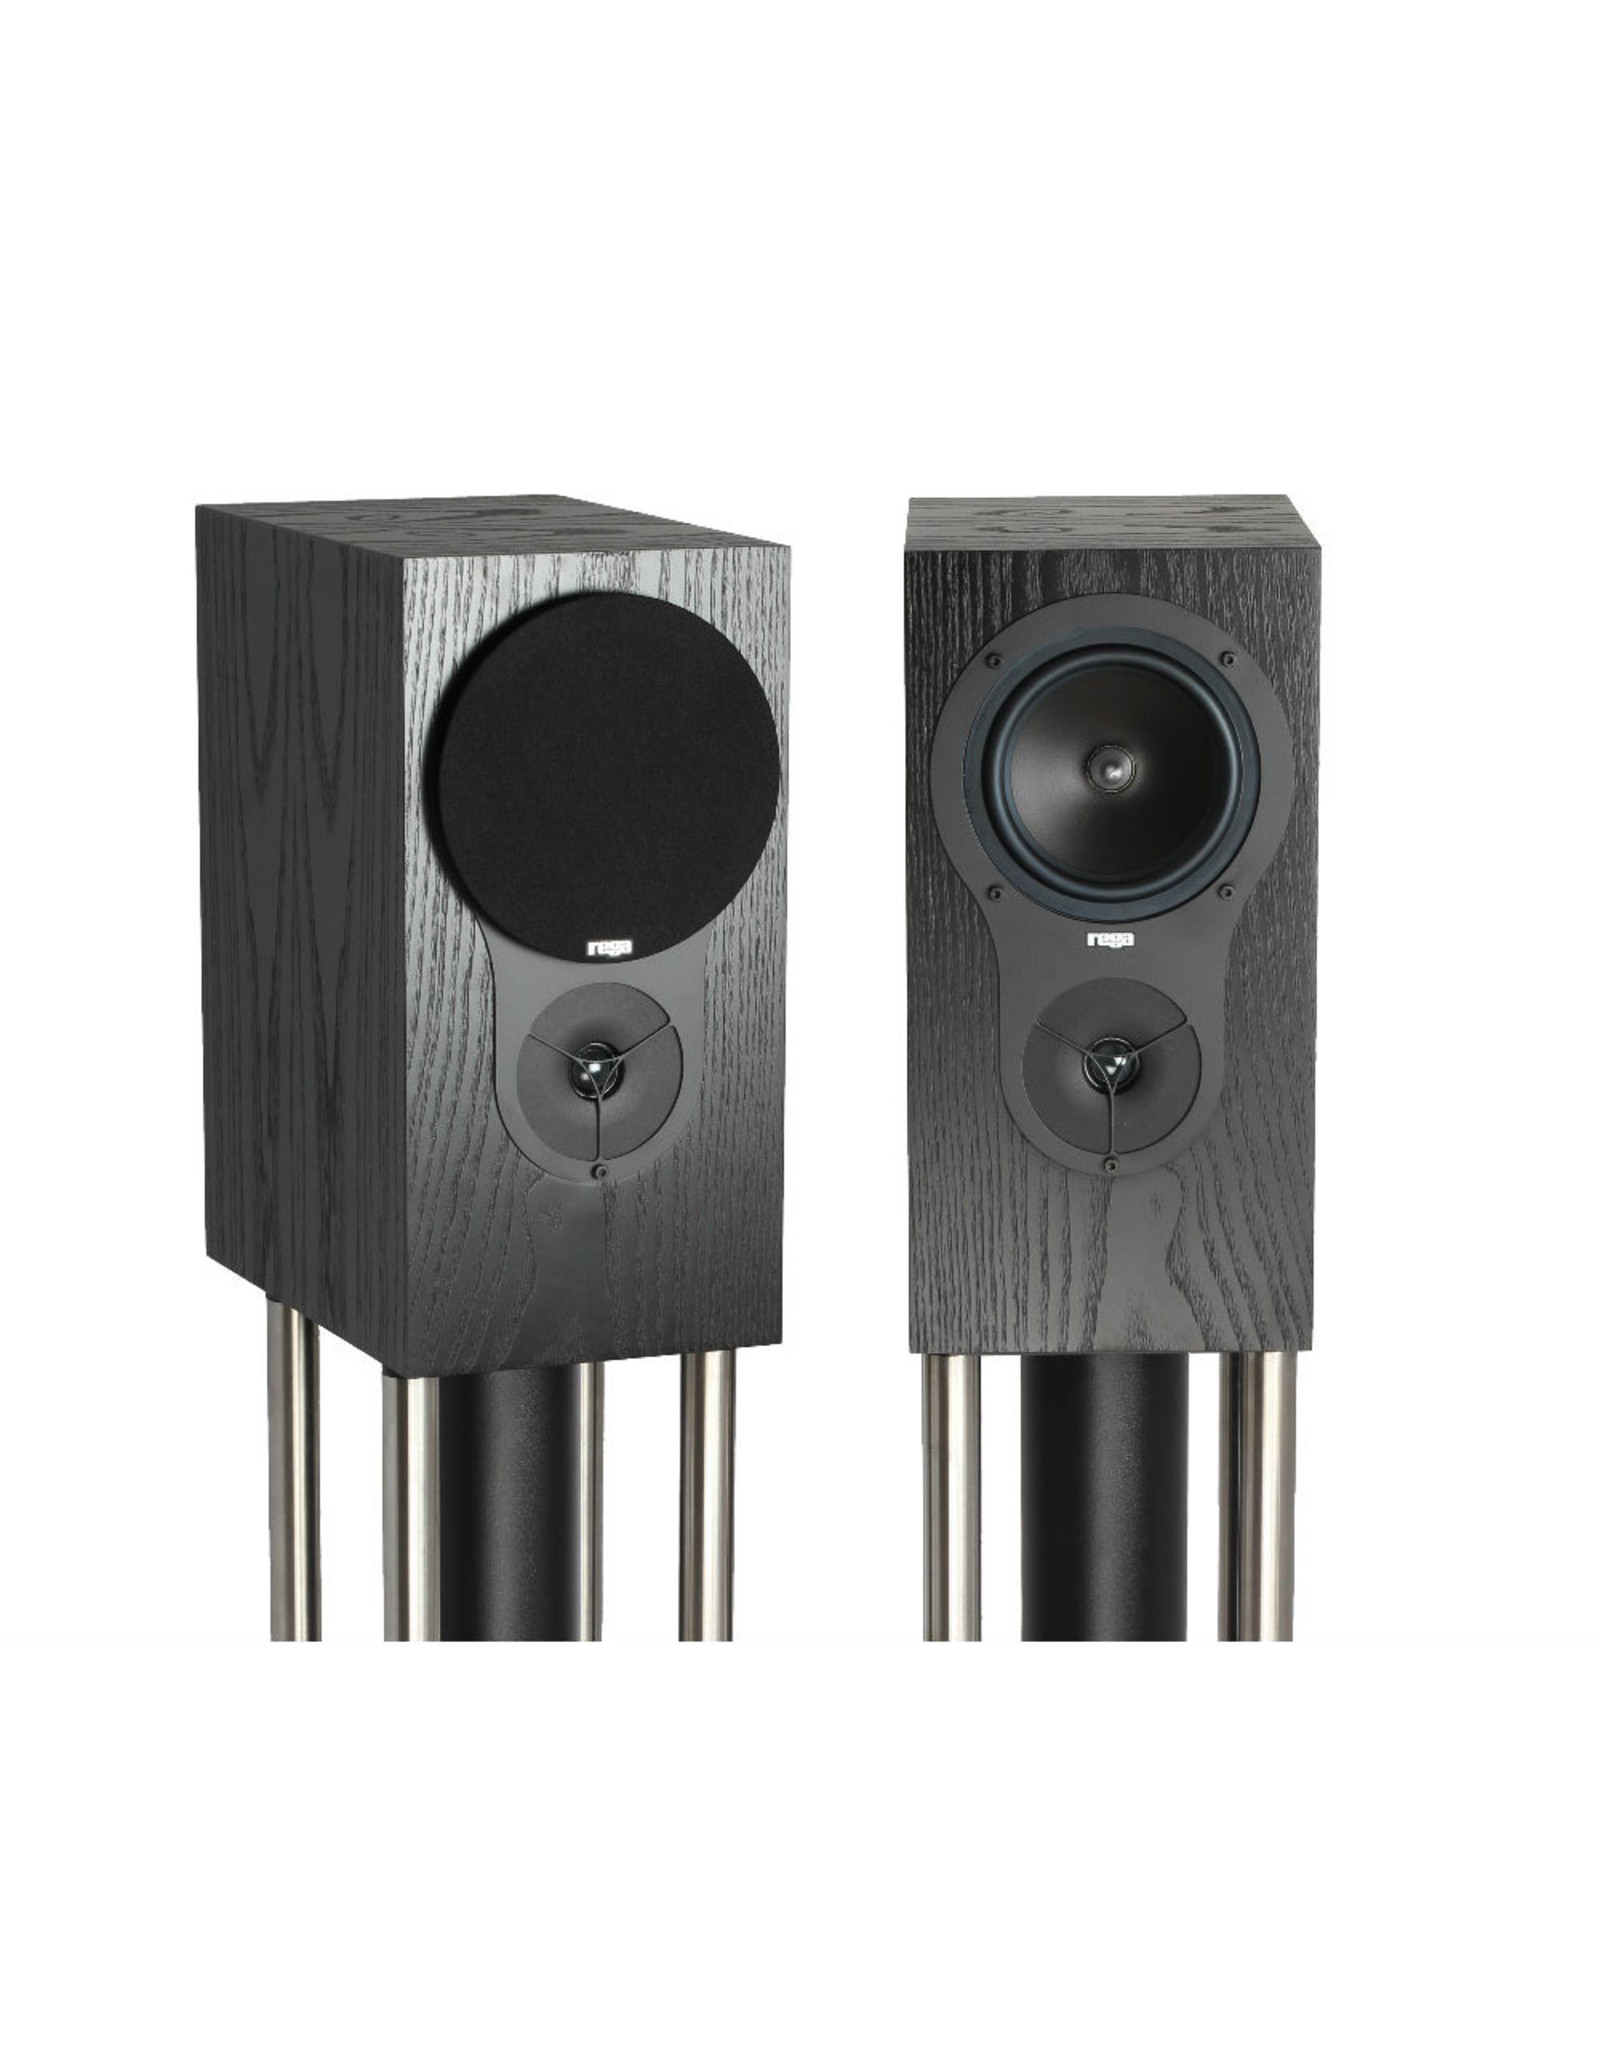 Rega Rega RX1 Bookshelf Speakers